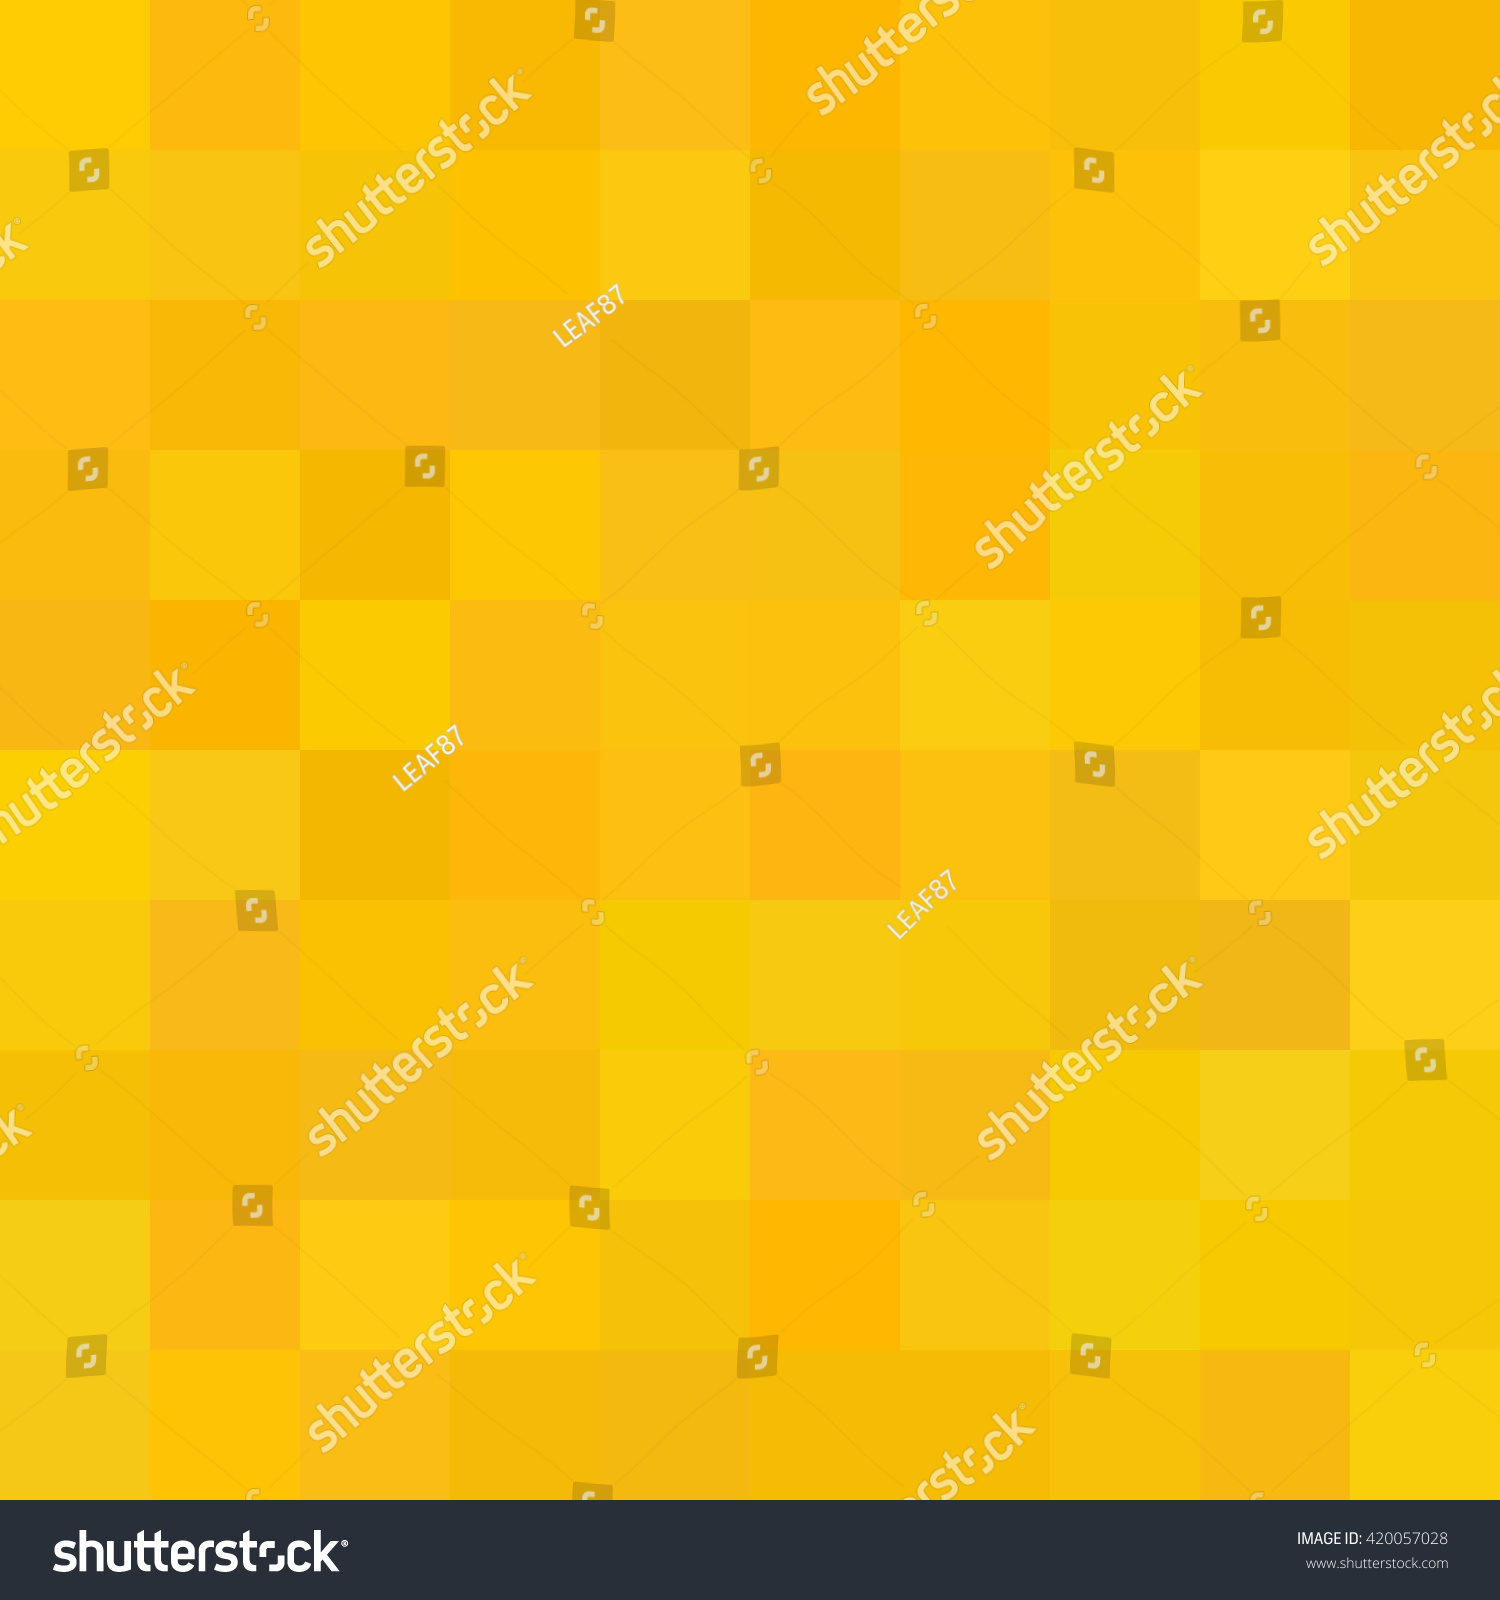 abstract poster design background - photo #28